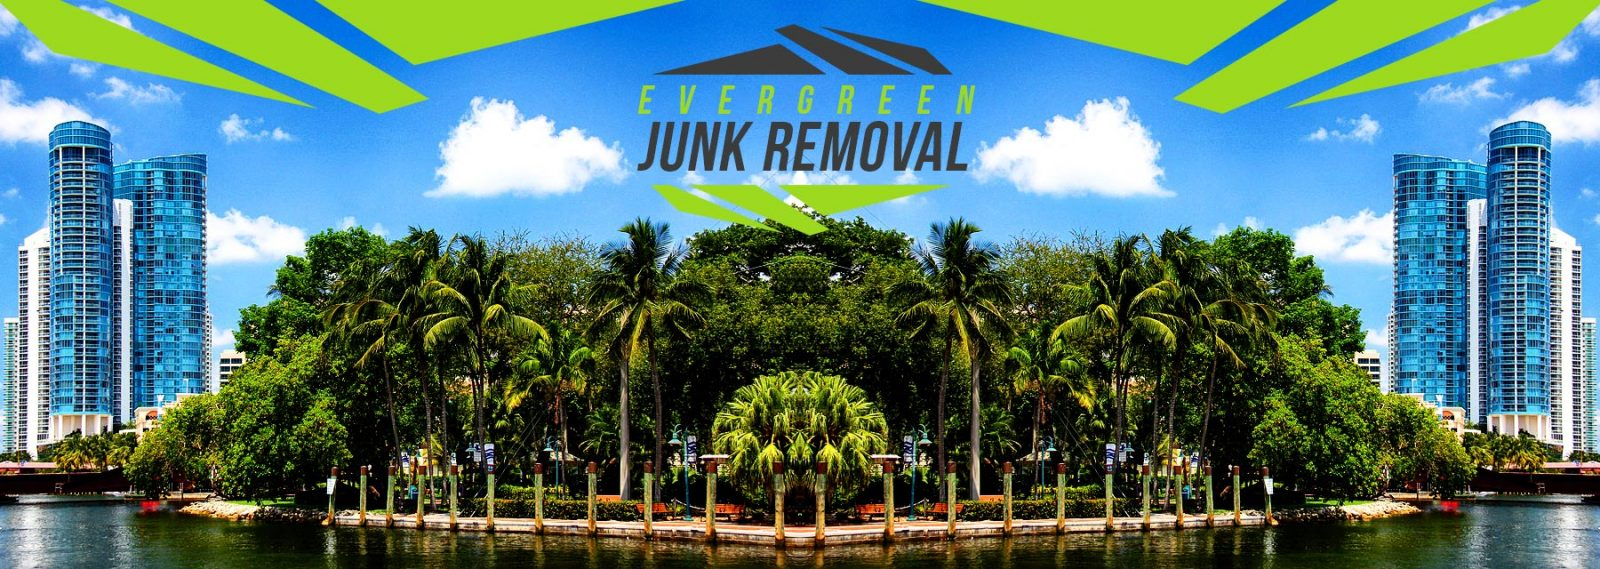 Tequesta Hot Tub Removal Company